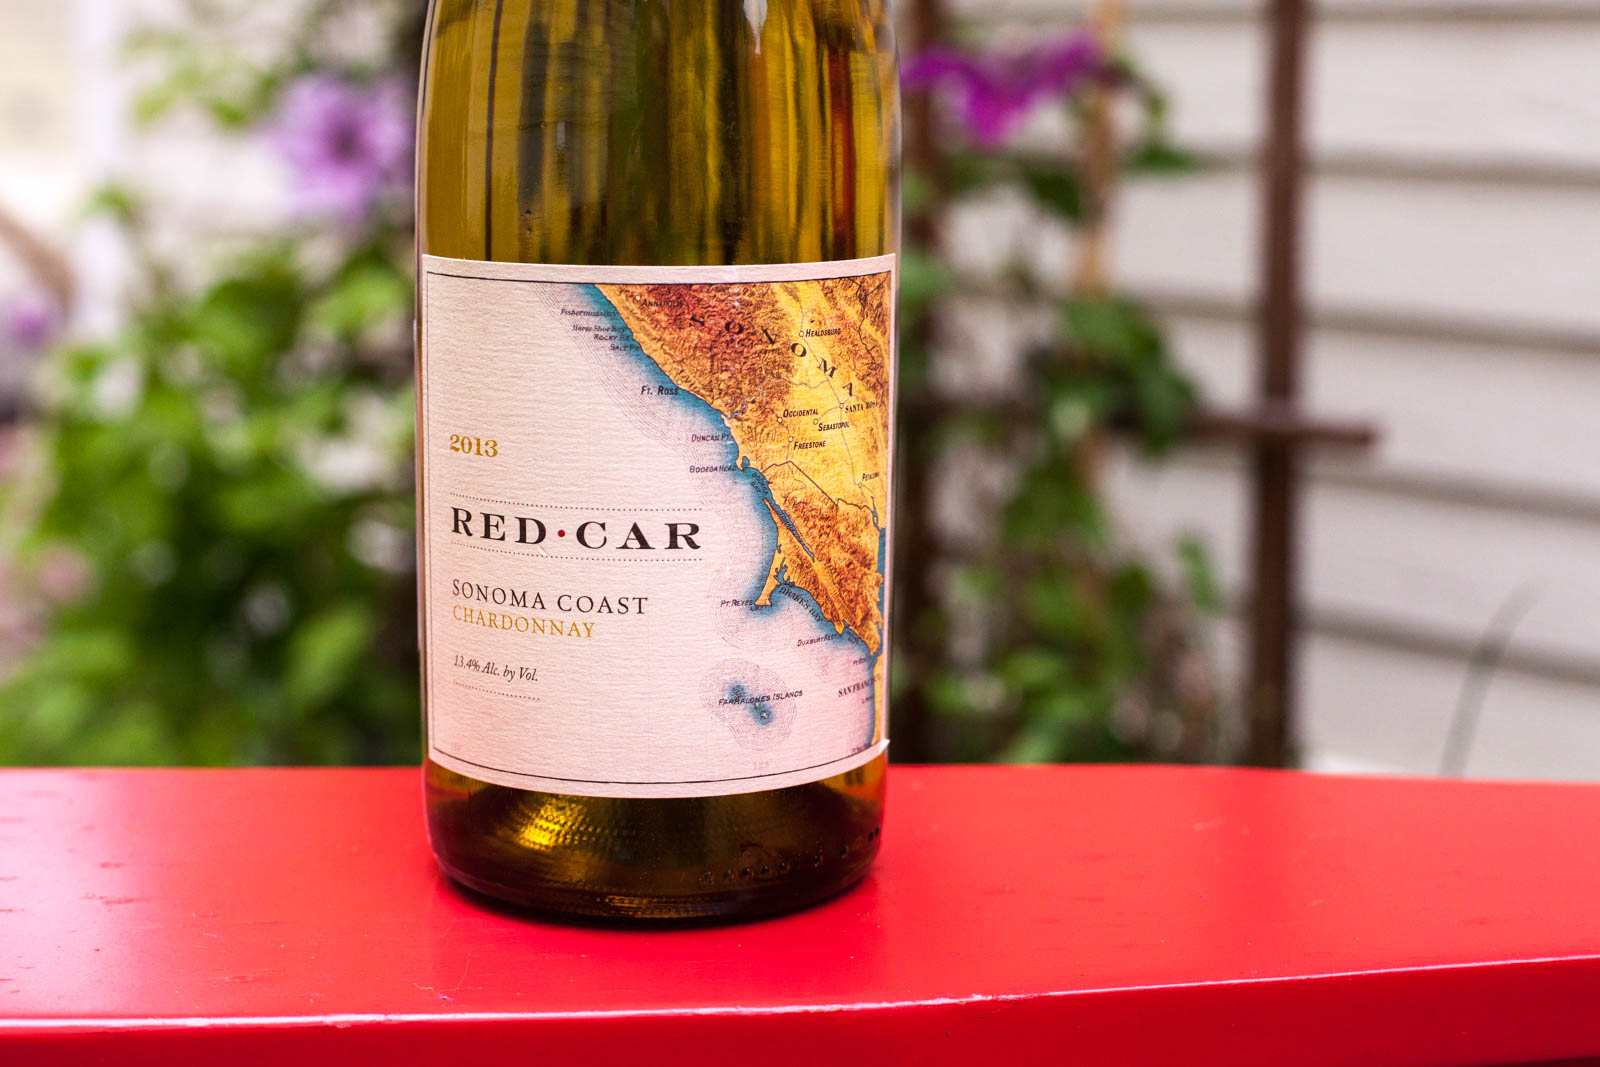 2013 Red Car Sonoma Coast Chardonnay